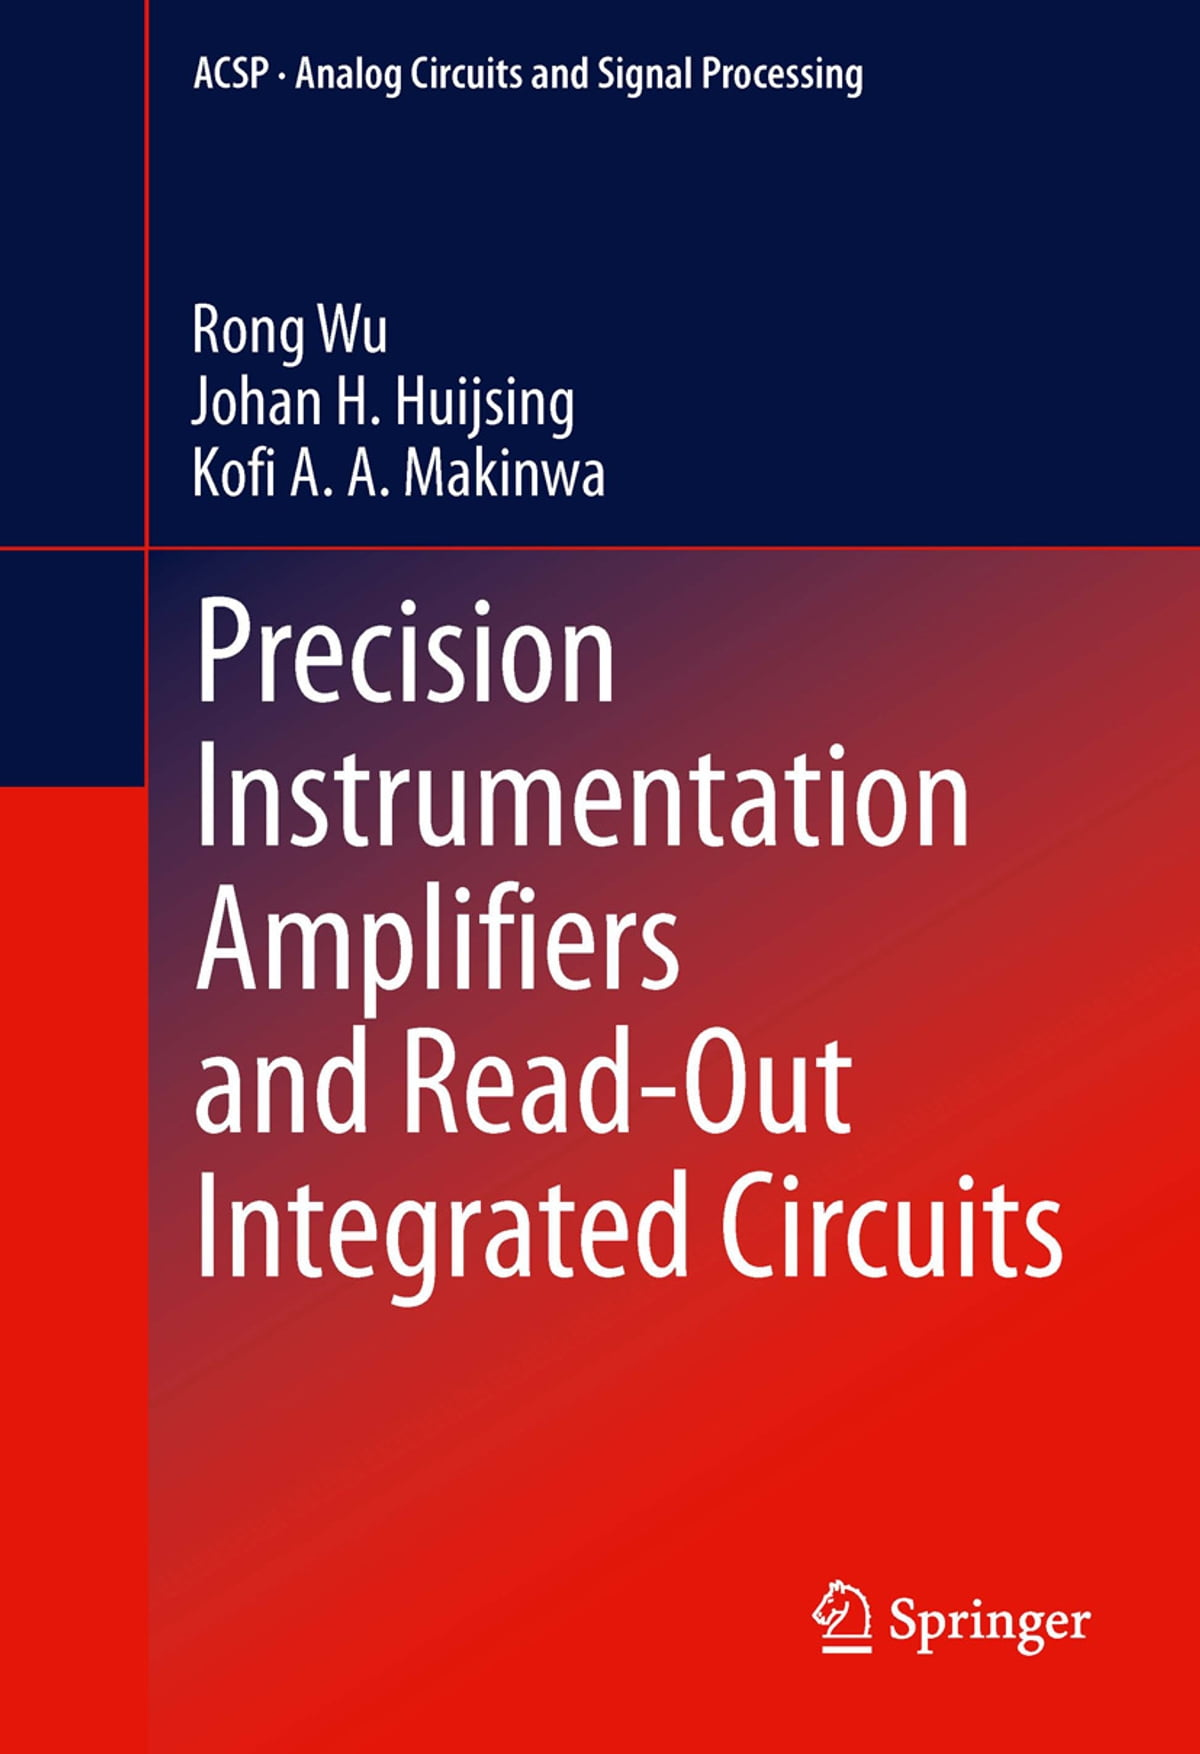 Precision Instrumentation Amplifiers And Read Out Integrated Circuit Amplifier Images Of Circuits Ebook By Rong Wu 9781461437314 Rakuten Kobo